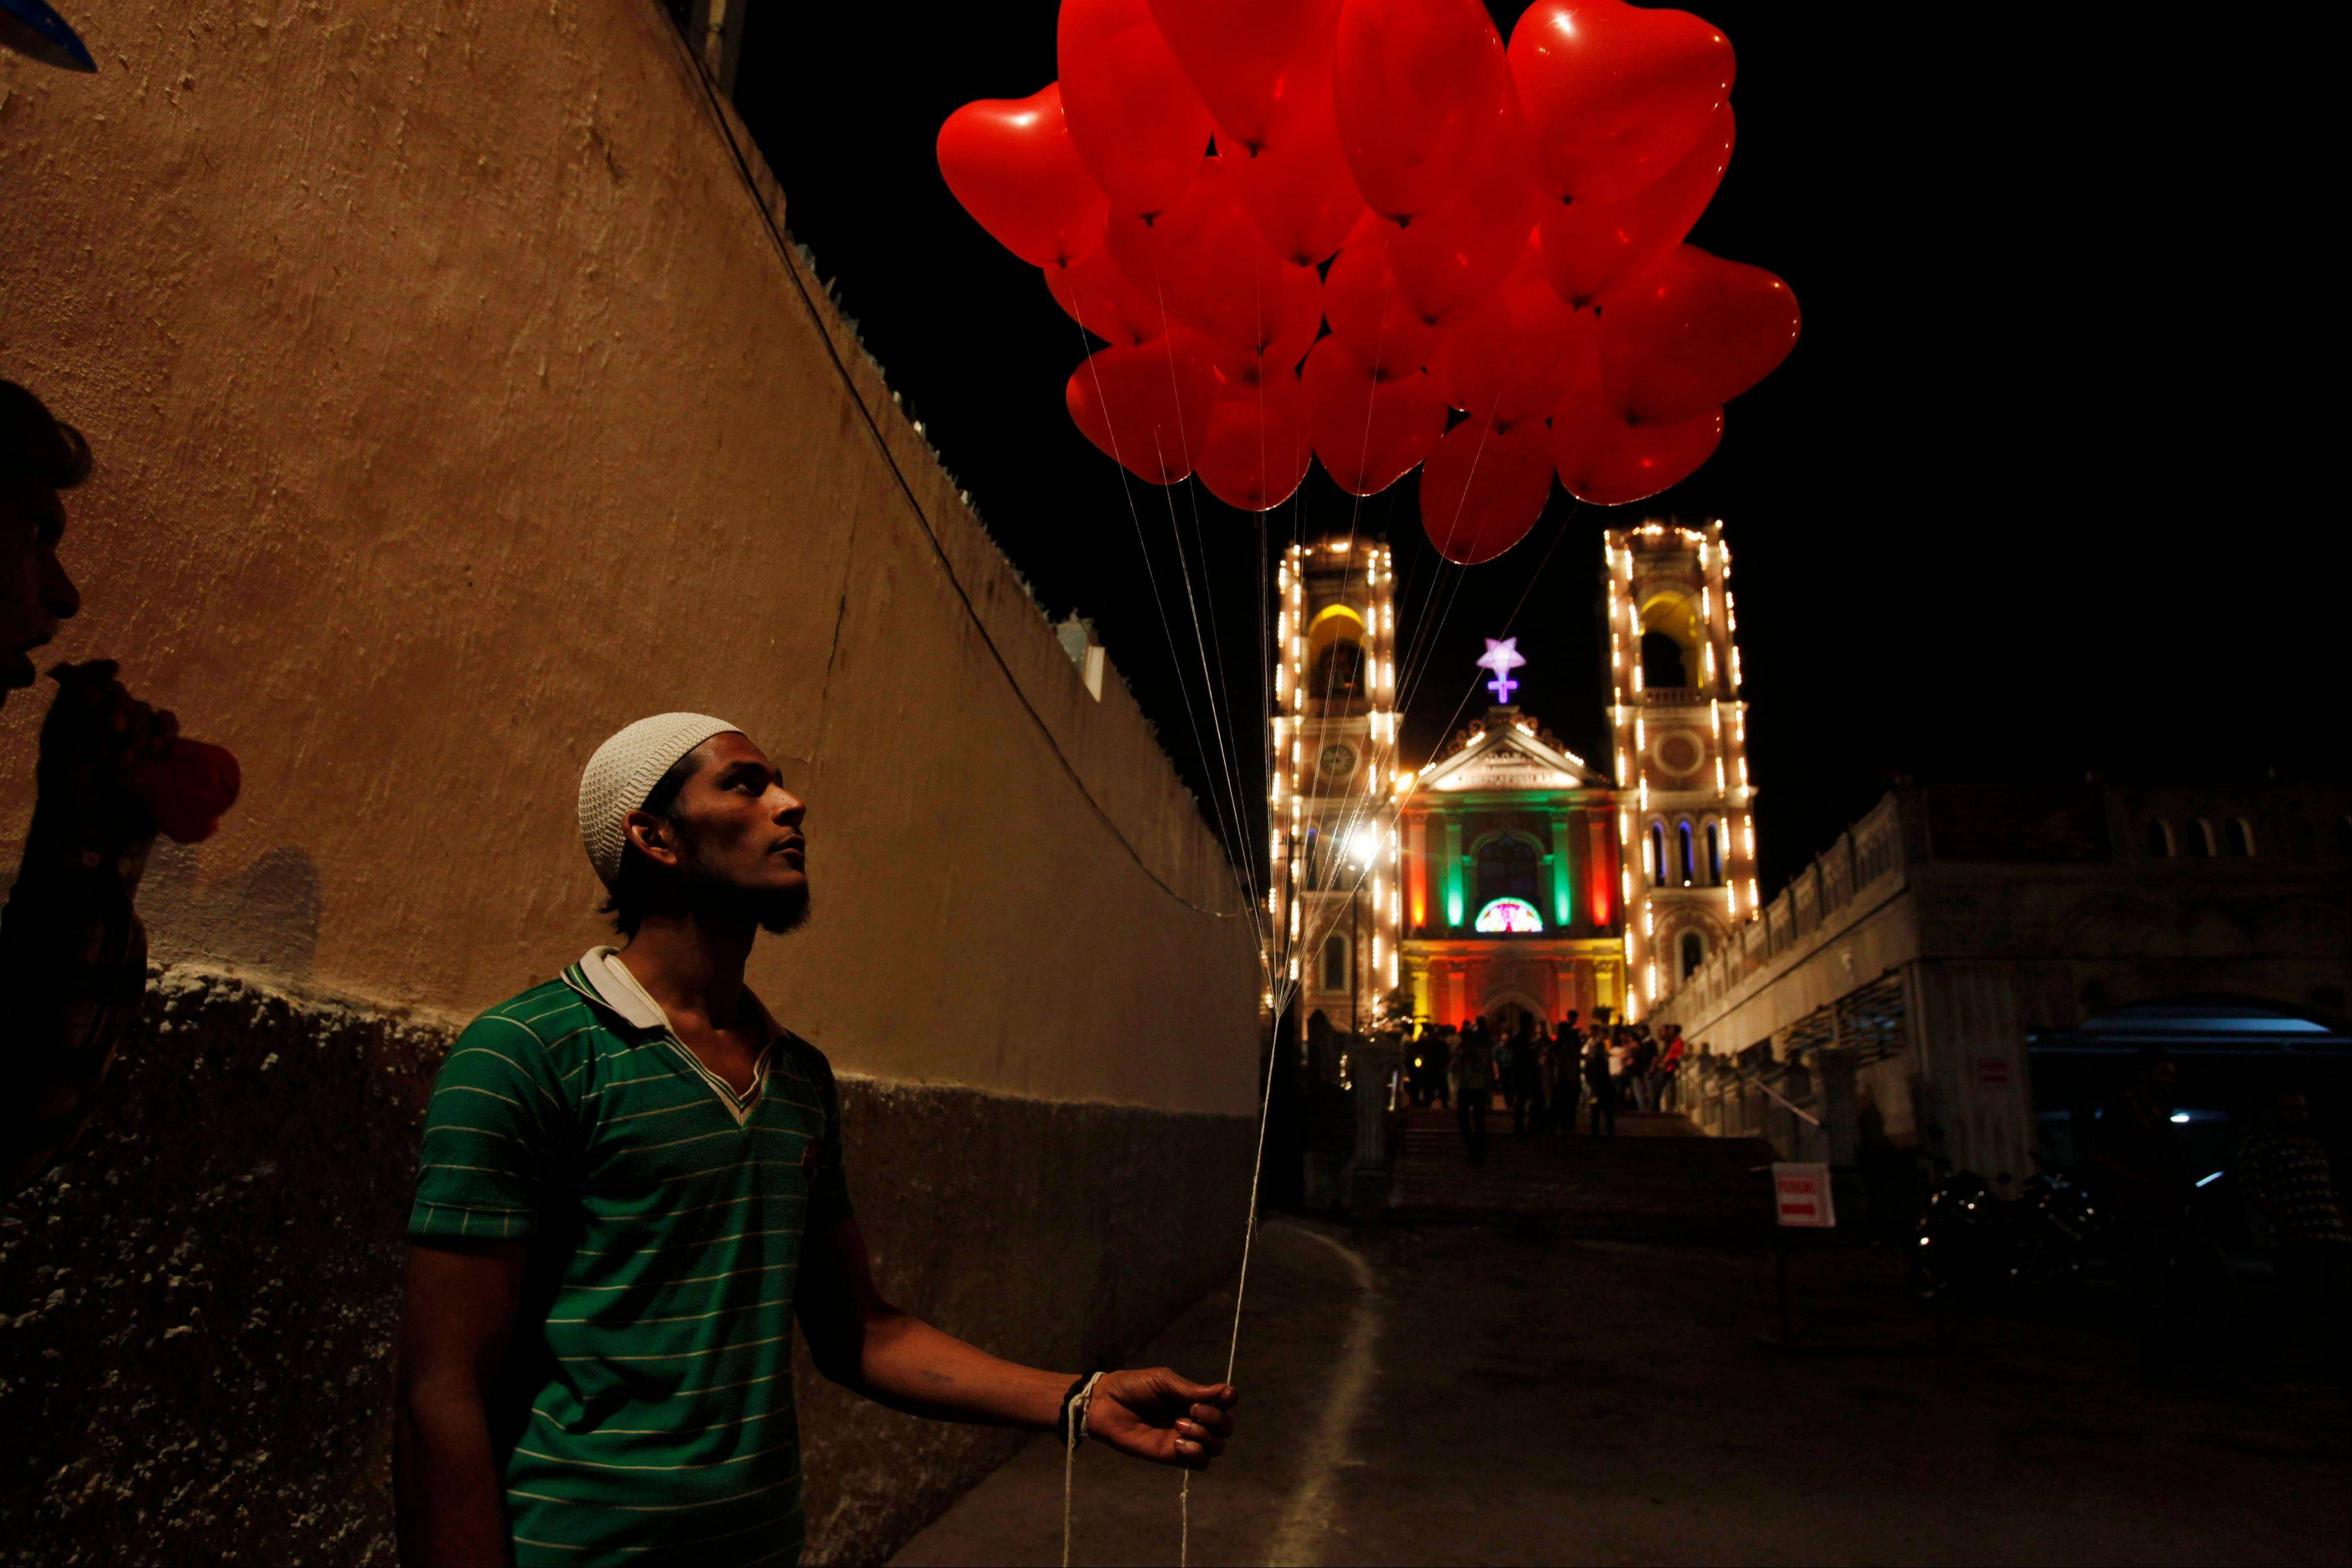 An Indian Muslim vendor sells balloons in front of St Joseph Cathedral during Christmas celebrations in Hyderabad, India, early Tuesday, Dec. 25, 2012. Although Christians comprise only two percent of the population Christmas is a national holiday and is observed across the country as an occasion to celebrate.